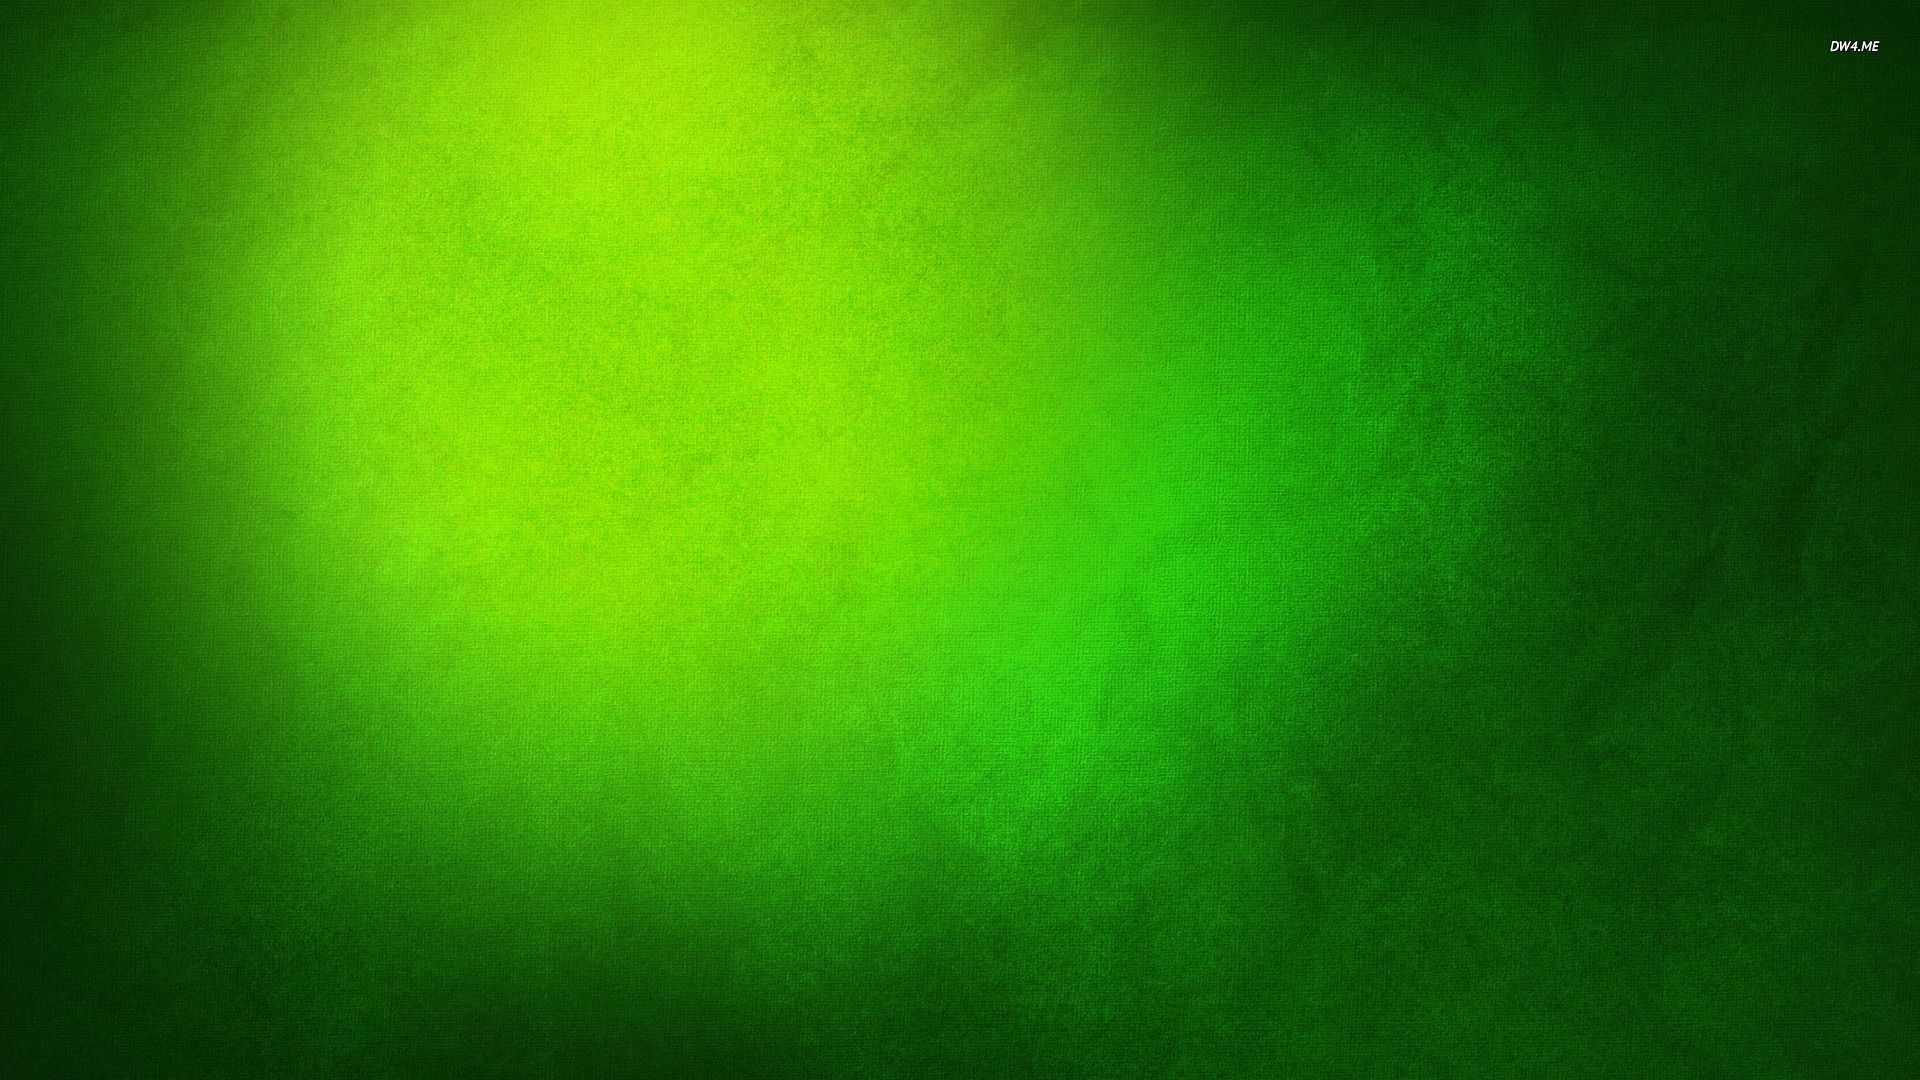 Fondos de pantalla verde Full HD # 3NBU83P | WallpapersExpert.com